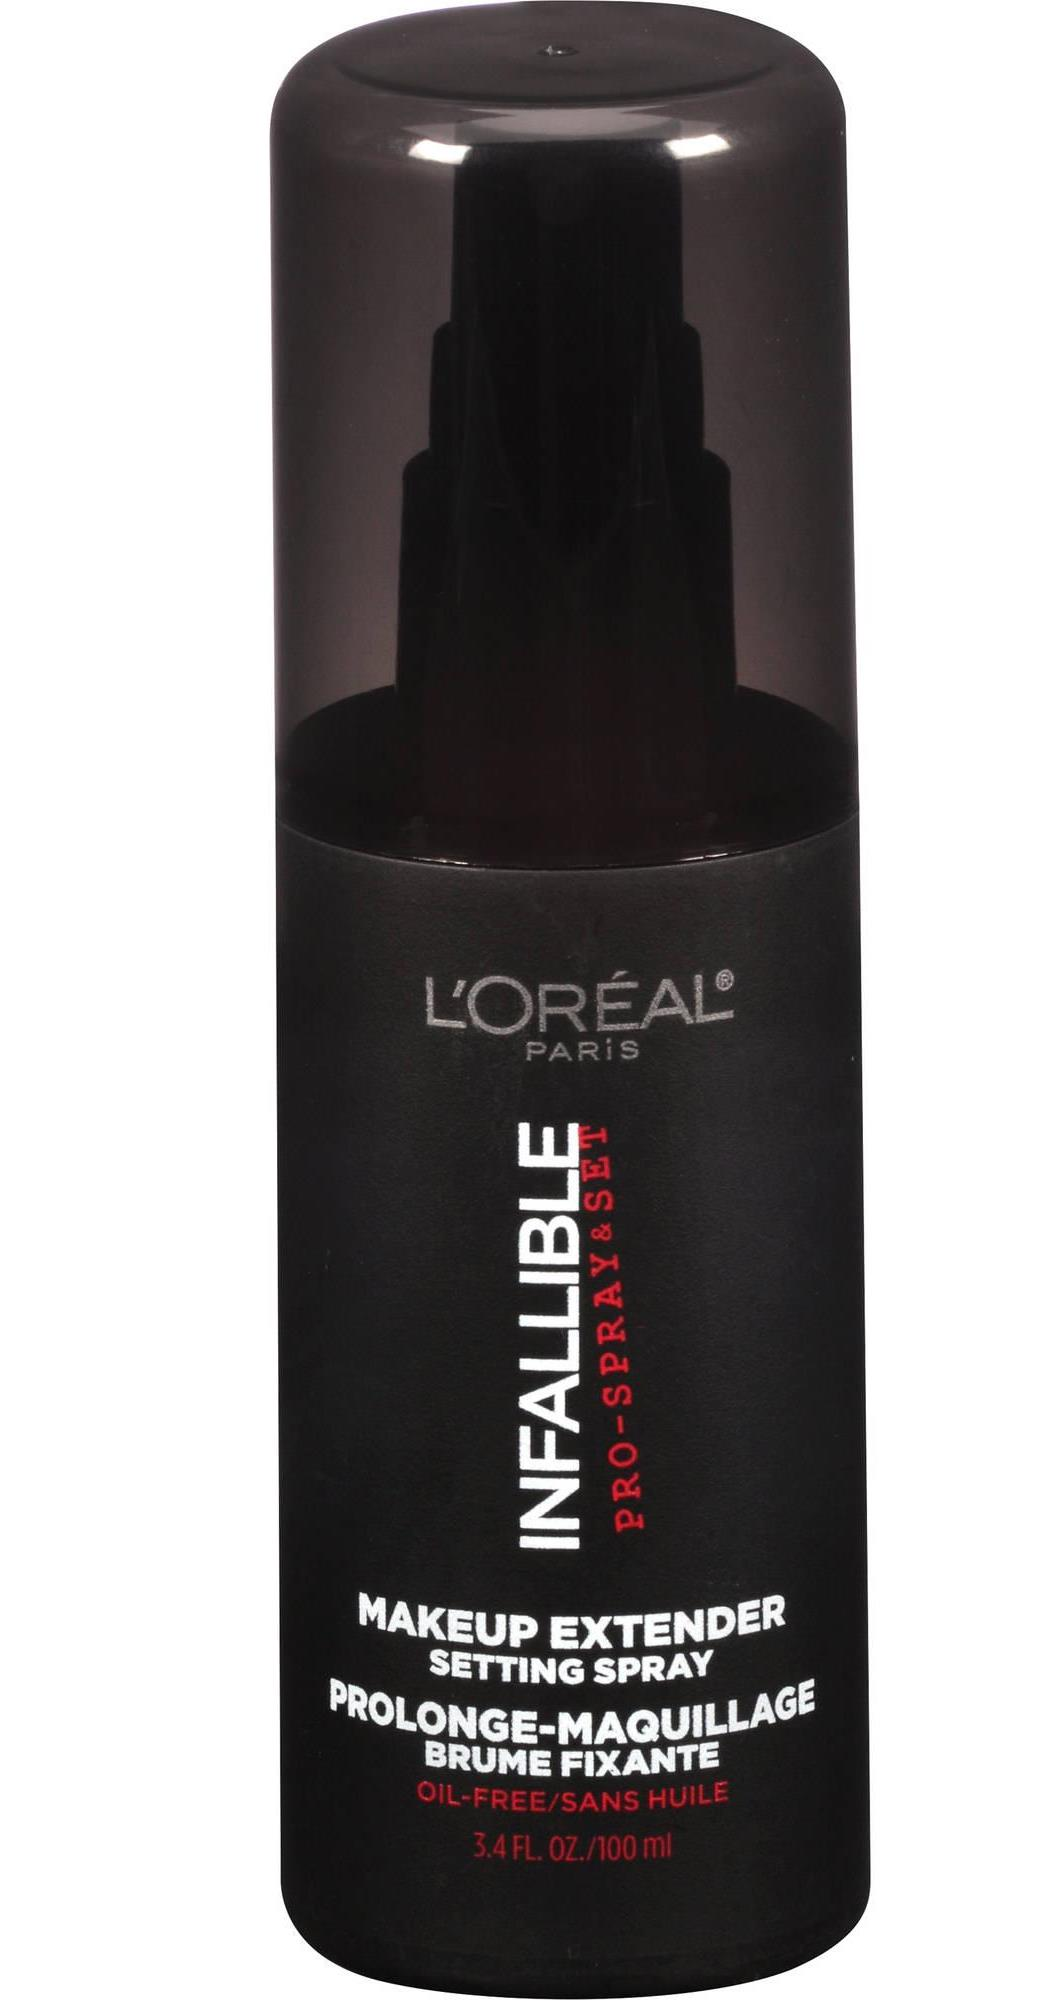 L'Oreal Paris' Infallible Pro-Spray